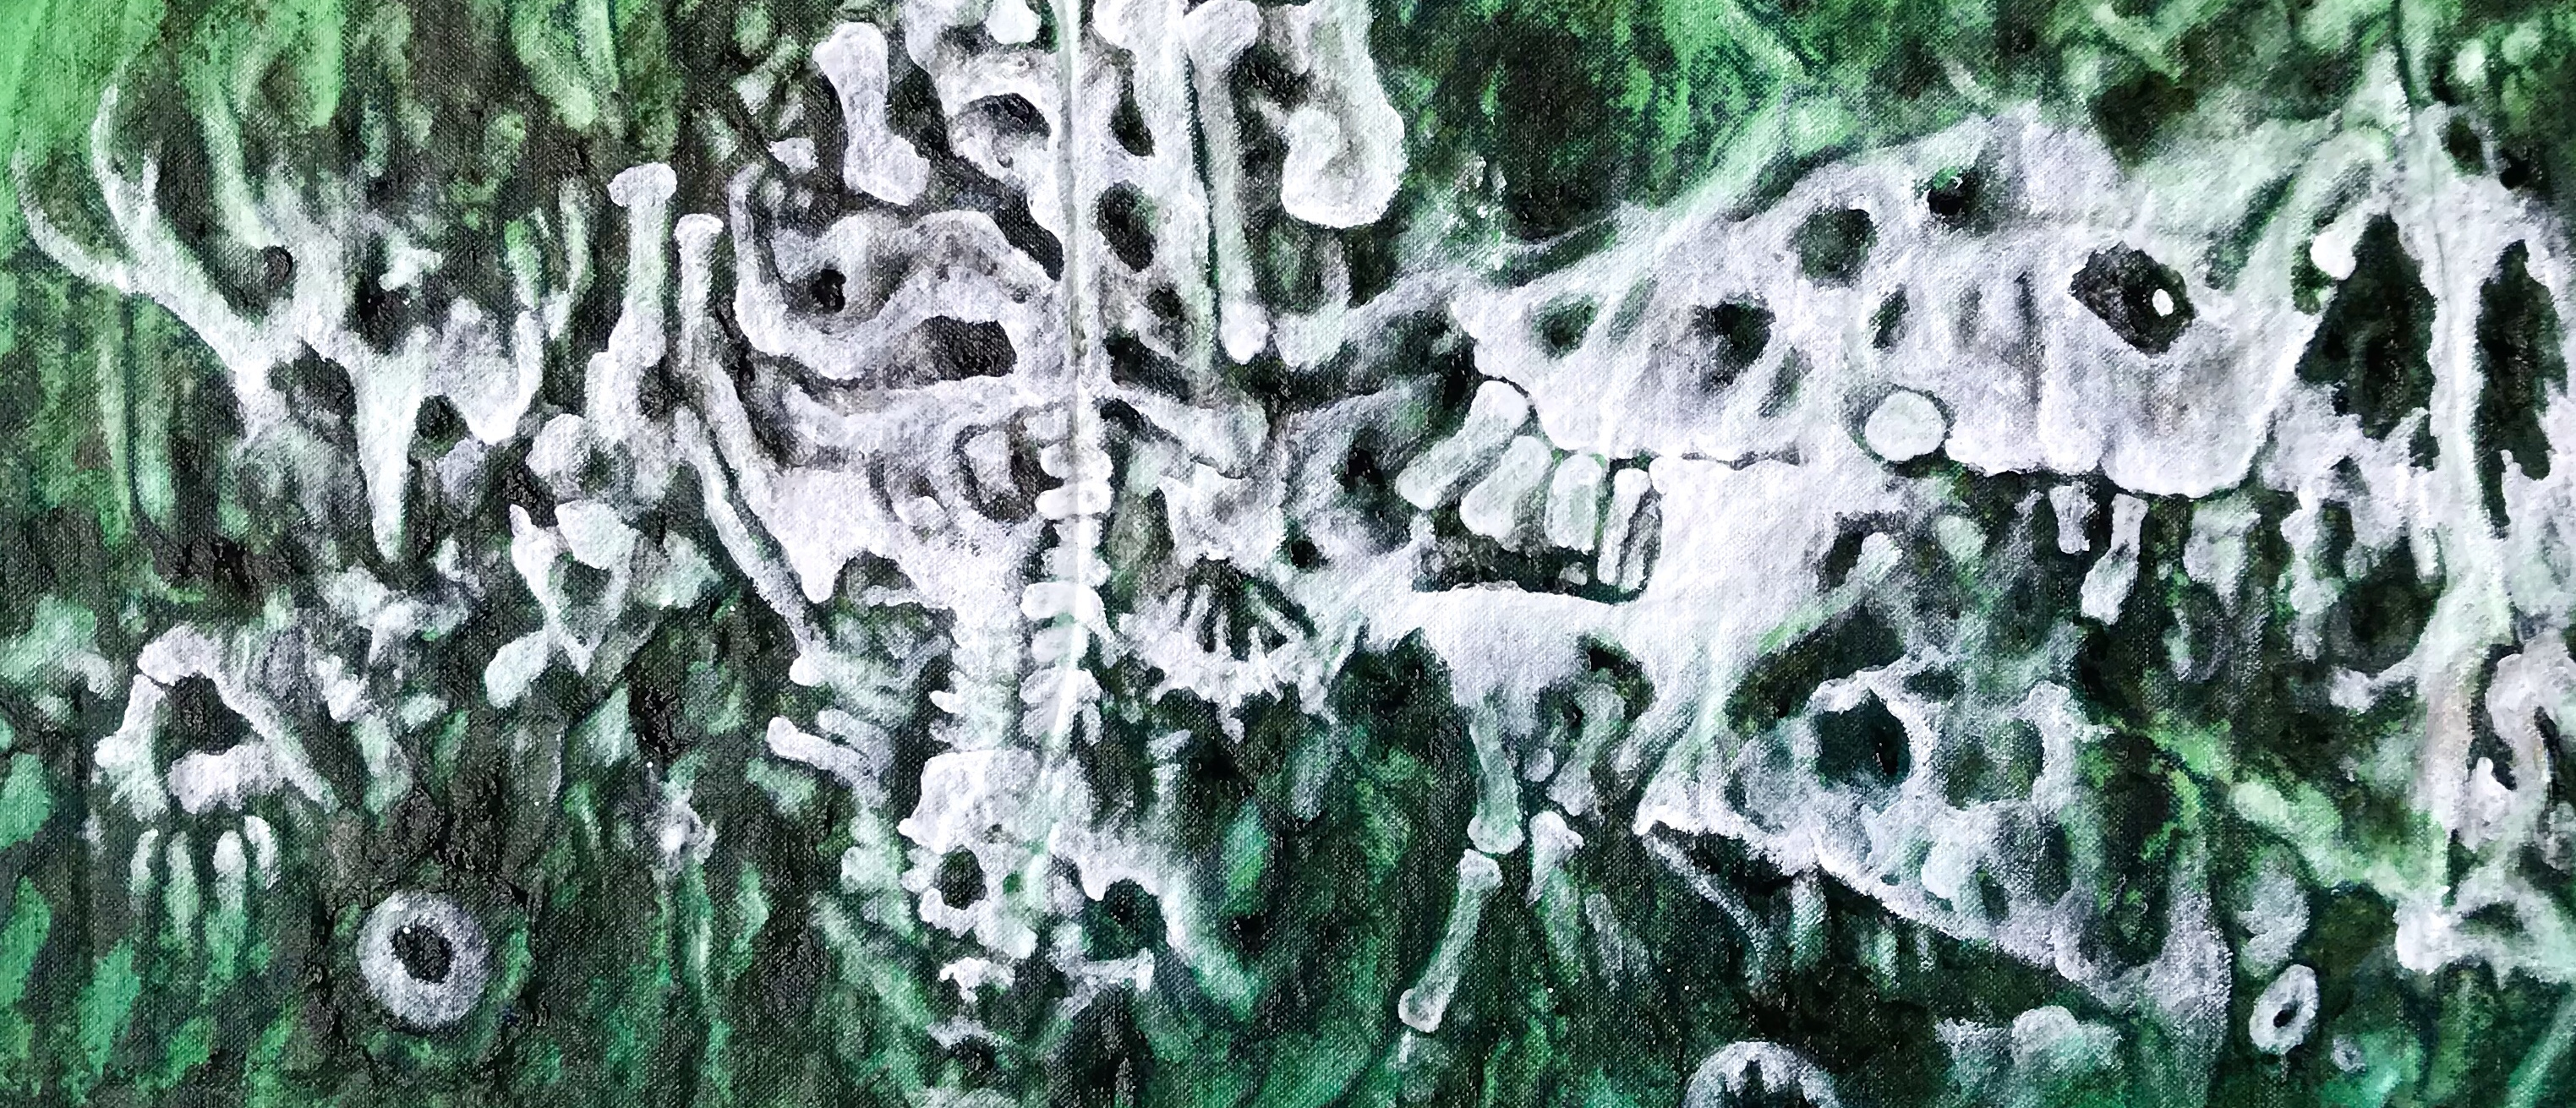 Detail of an abstract painting in progress by MJ Seal tha resembles a cross between a giant green paramecium and a jumbled bone bed